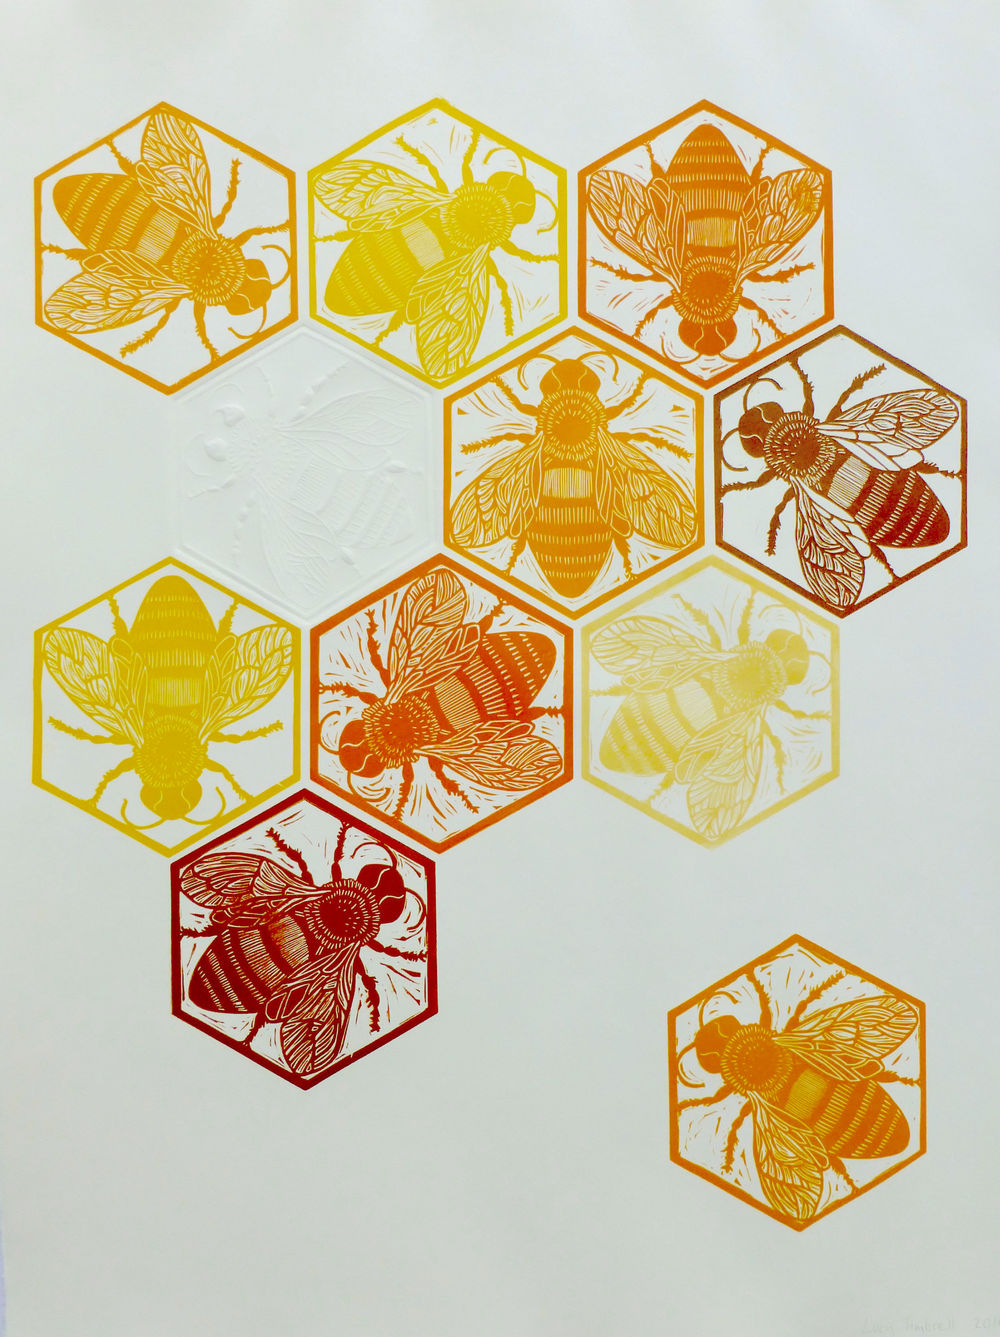 Hive   Linocut with embossing, 2016  Edition of 10  Paper size: 76 cm x 56 cm  $300